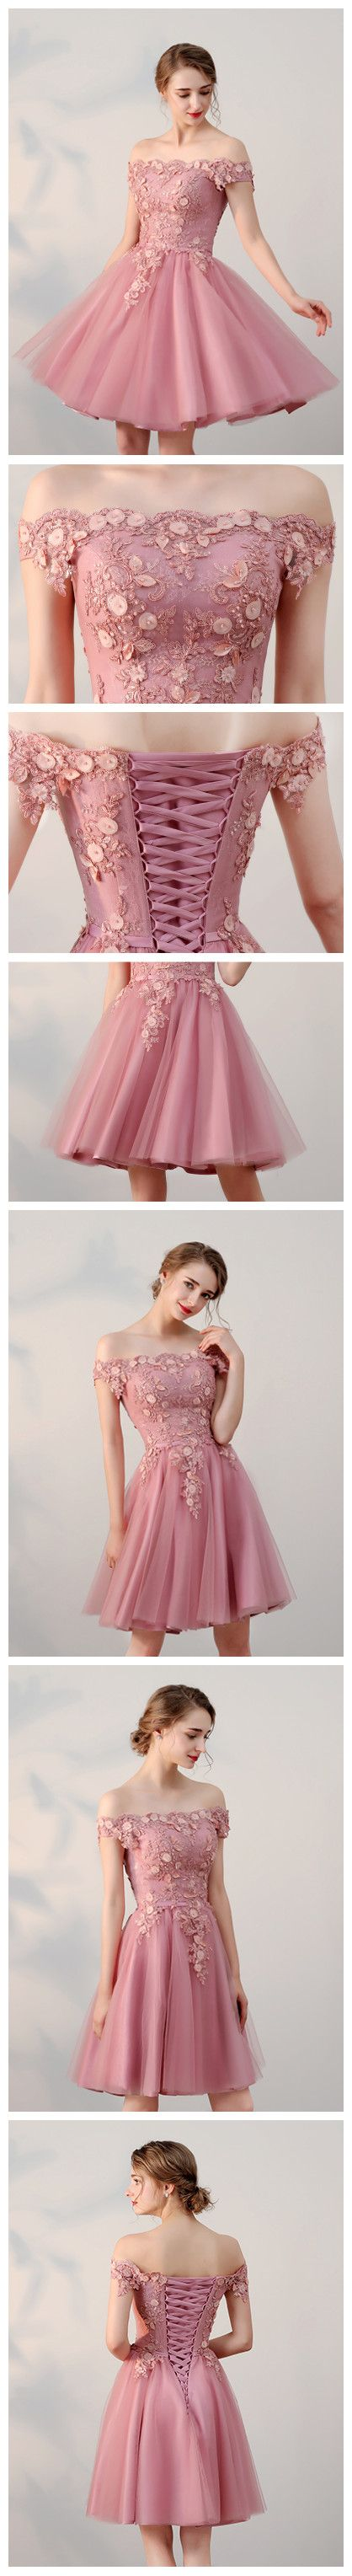 Chic aline offtheshoulder tulle pink charming short prom dress